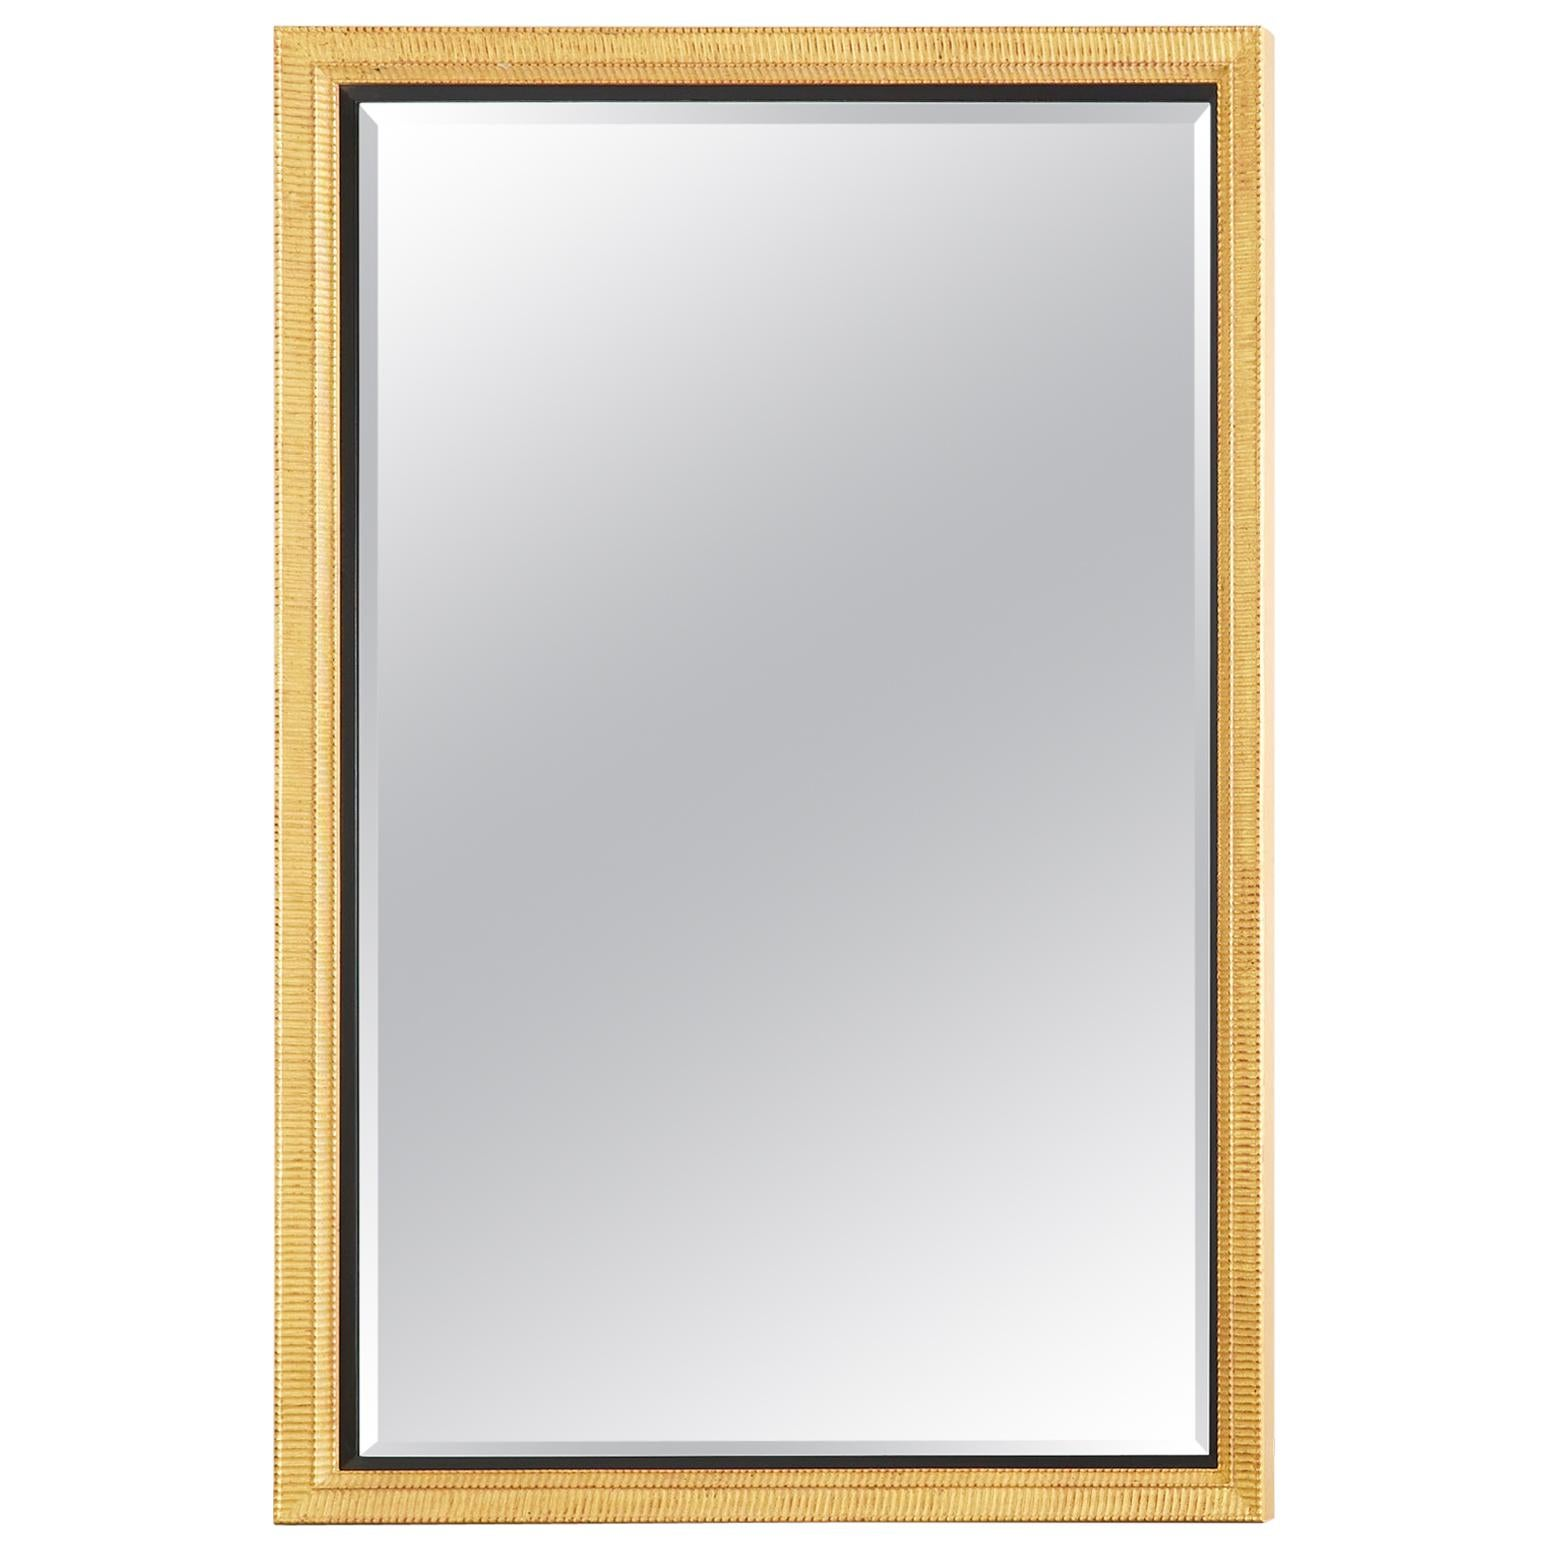 Large Rectangular Gilt Wood Wall Mirror with Beveled Glass